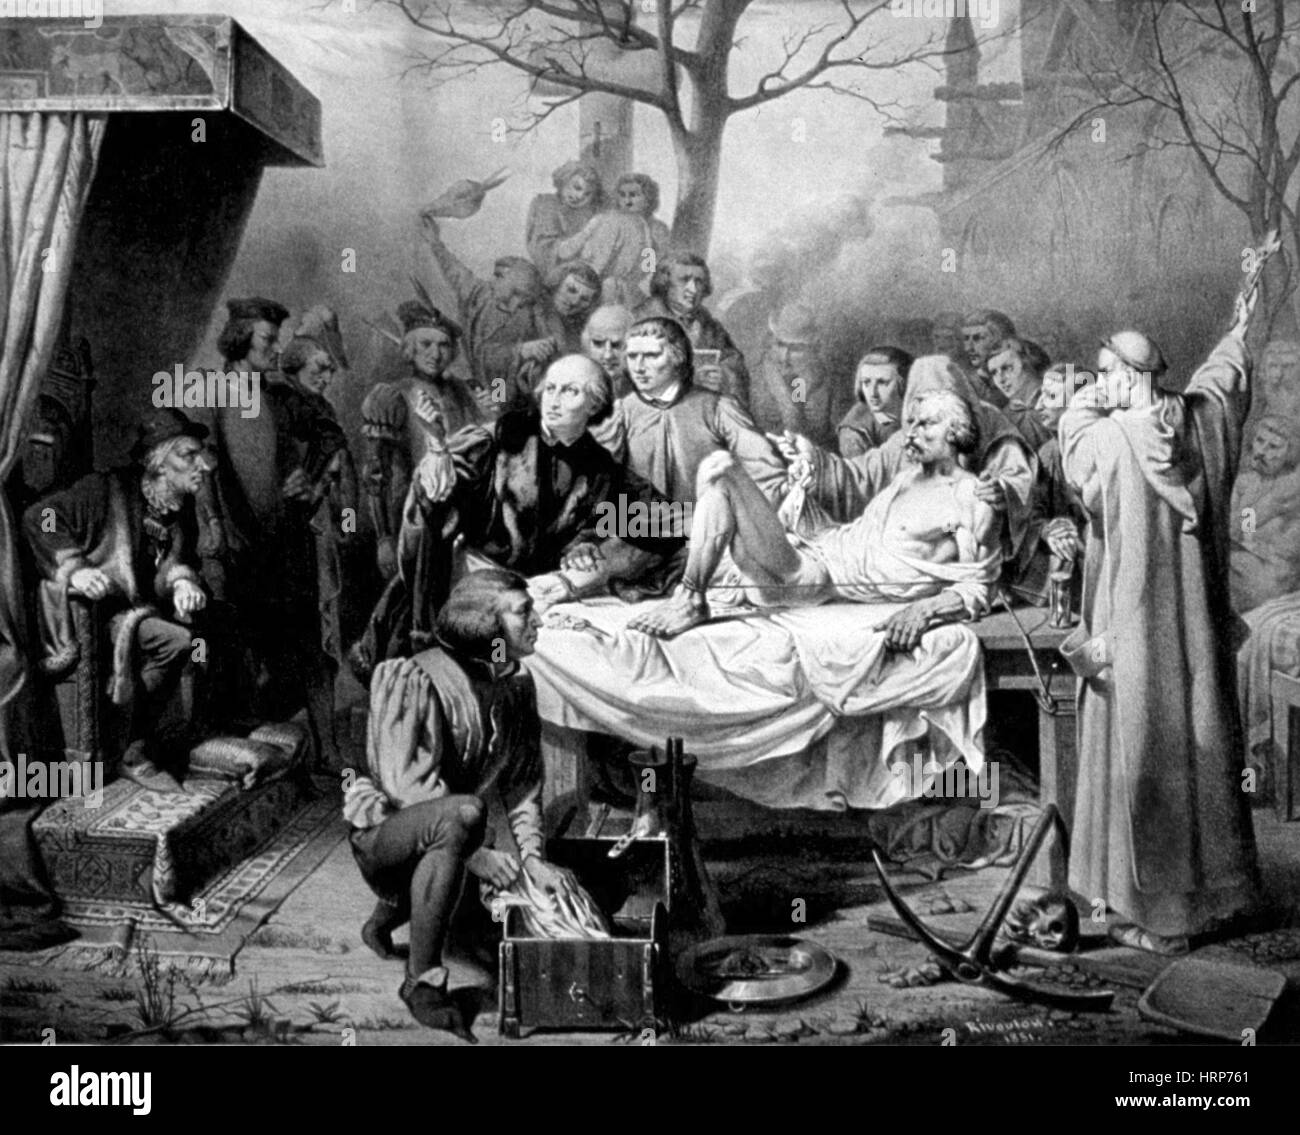 Louis XI Observes Gallstone Surgery, 15th Century - Stock Image